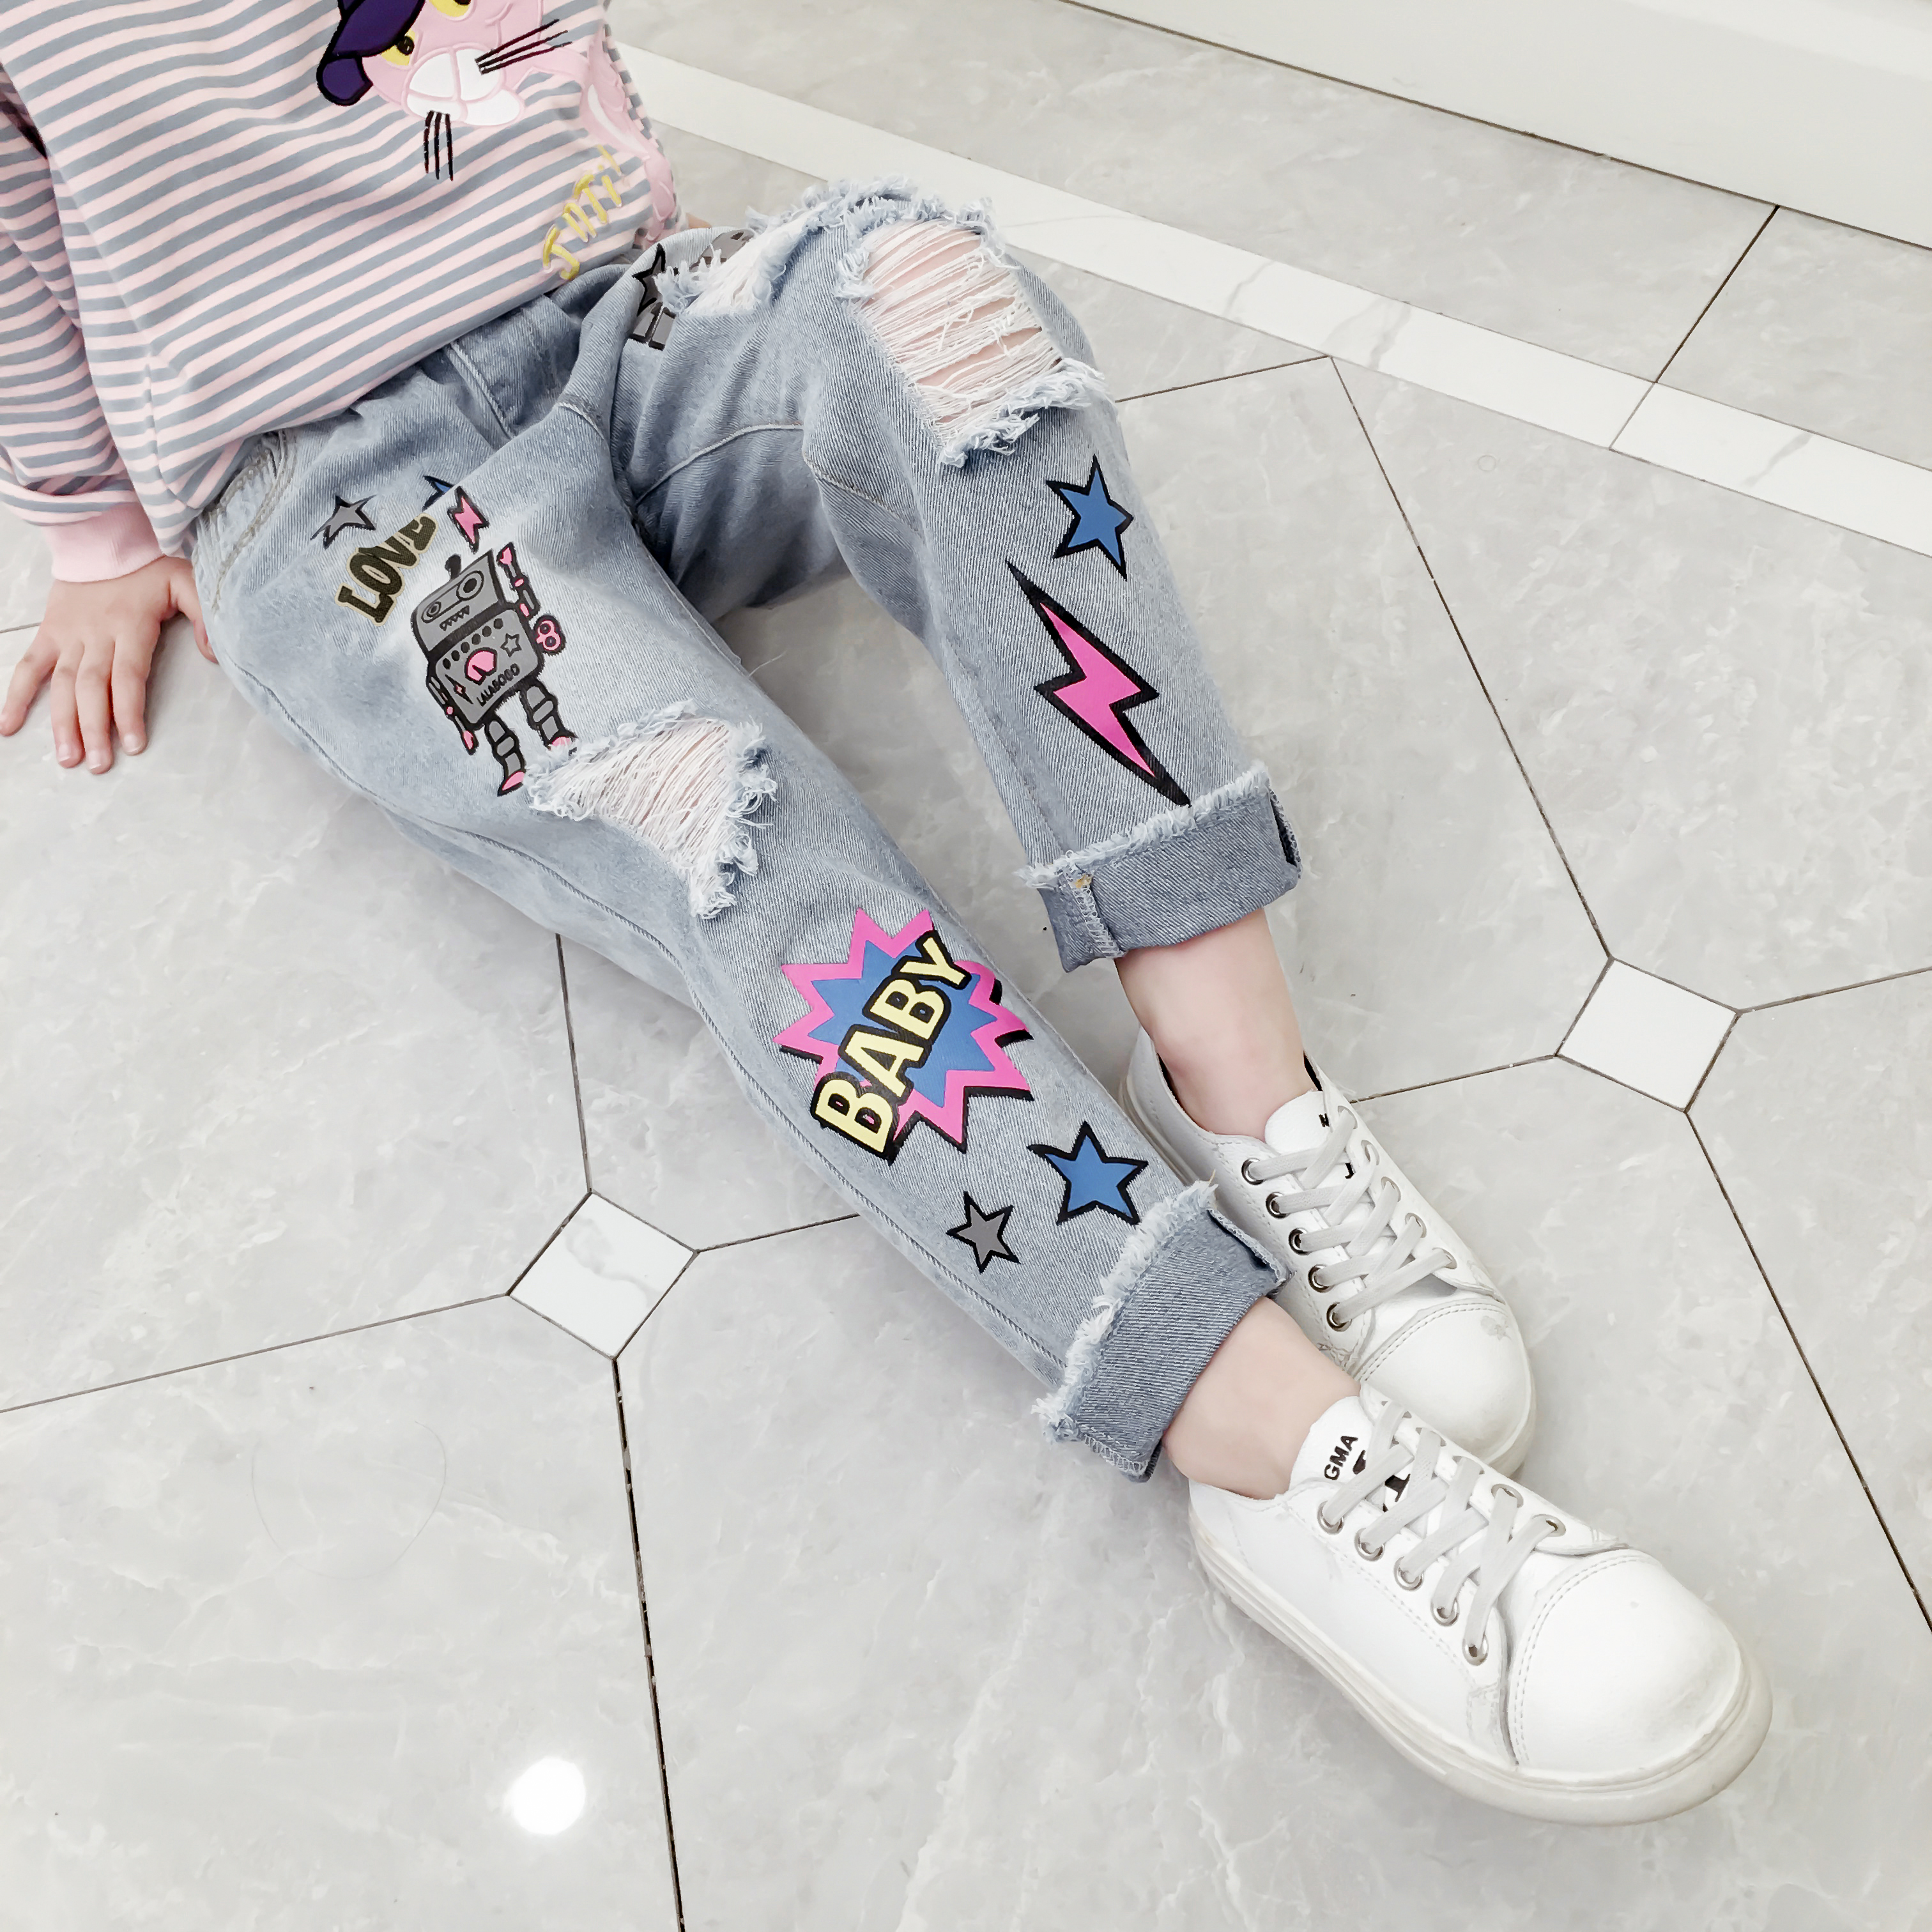 Girls Ripped Jeans Spring Summer Fall Style 2019 Trend Denim Trousers For Kids Fashion Catoon Distrressed Hole Pants For 3 14Yrs in Jeans from Mother Kids